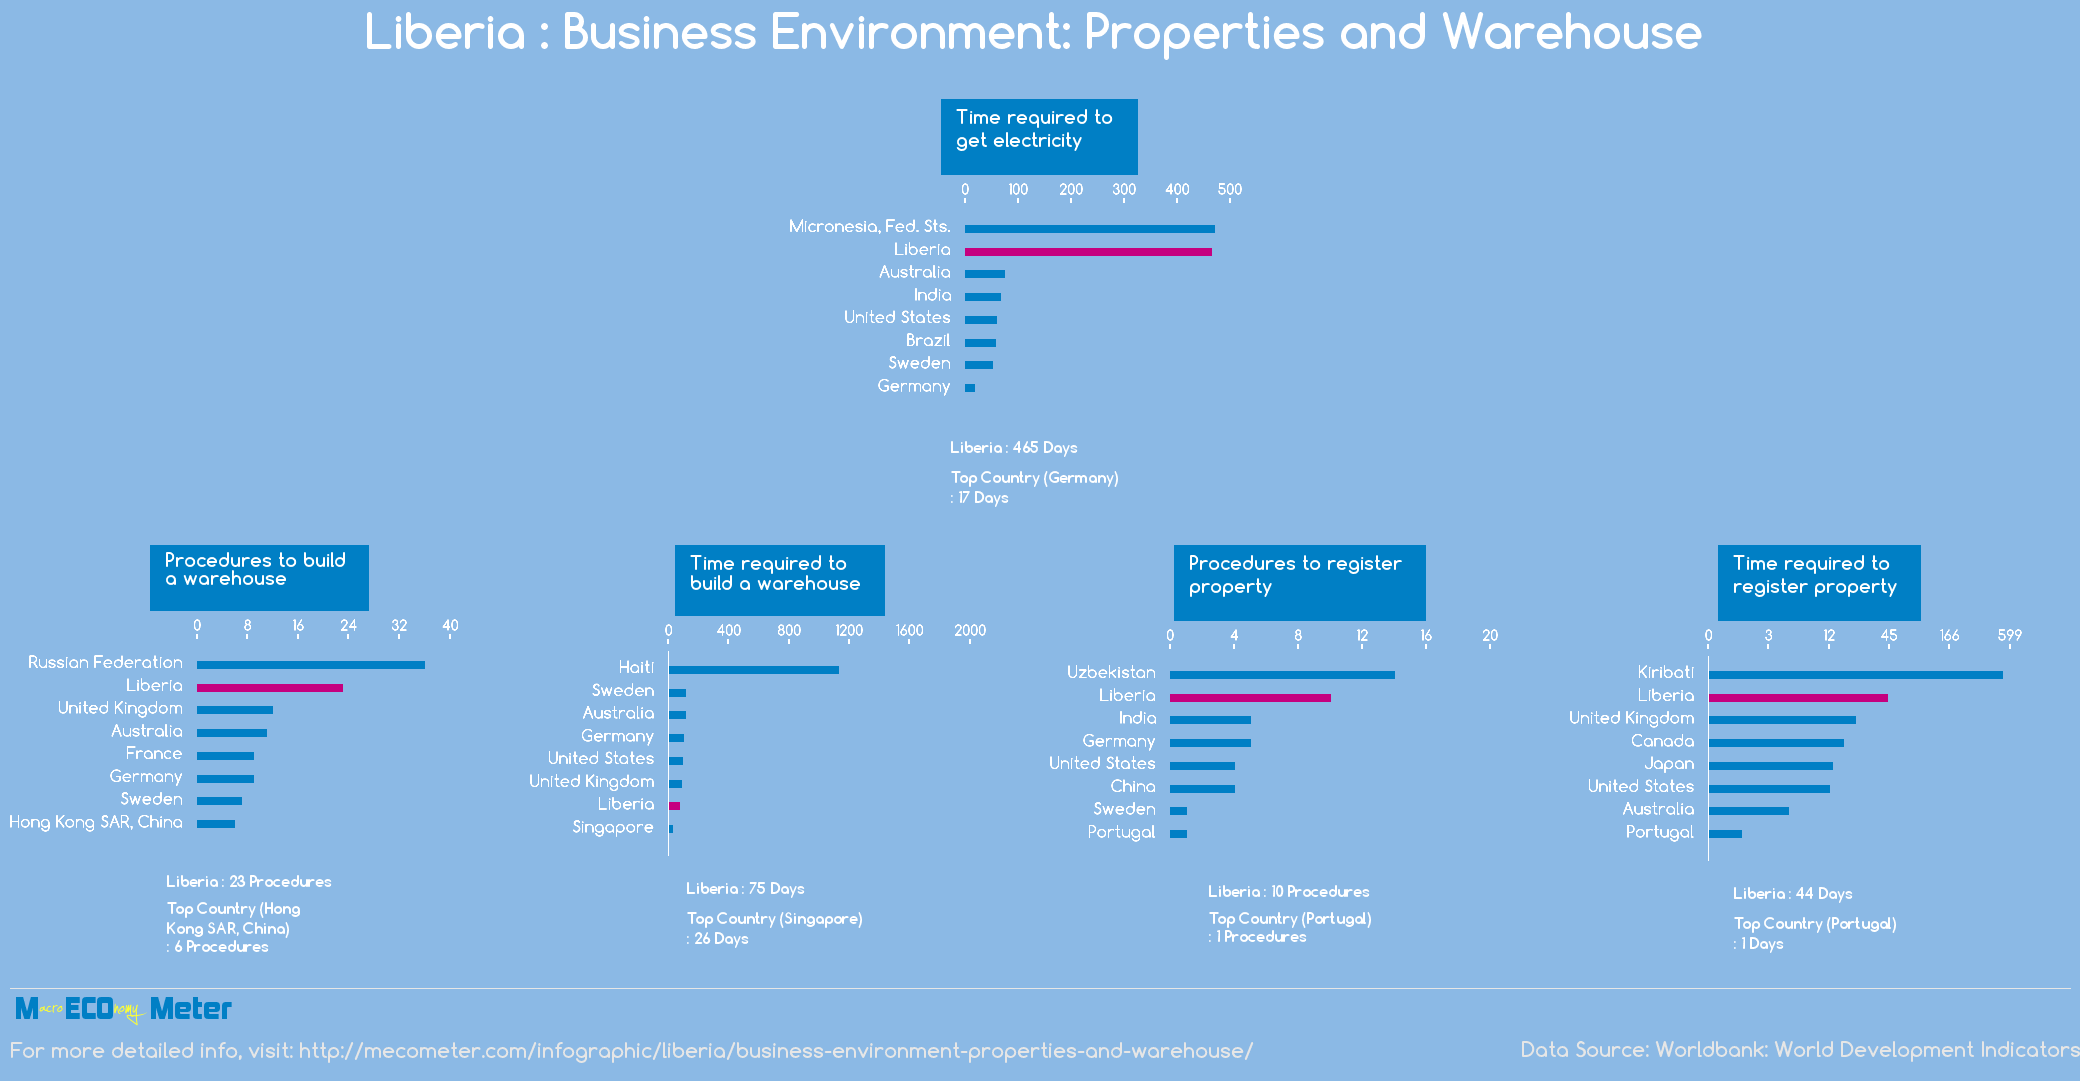 Liberia : Business Environment: Properties and Warehouse